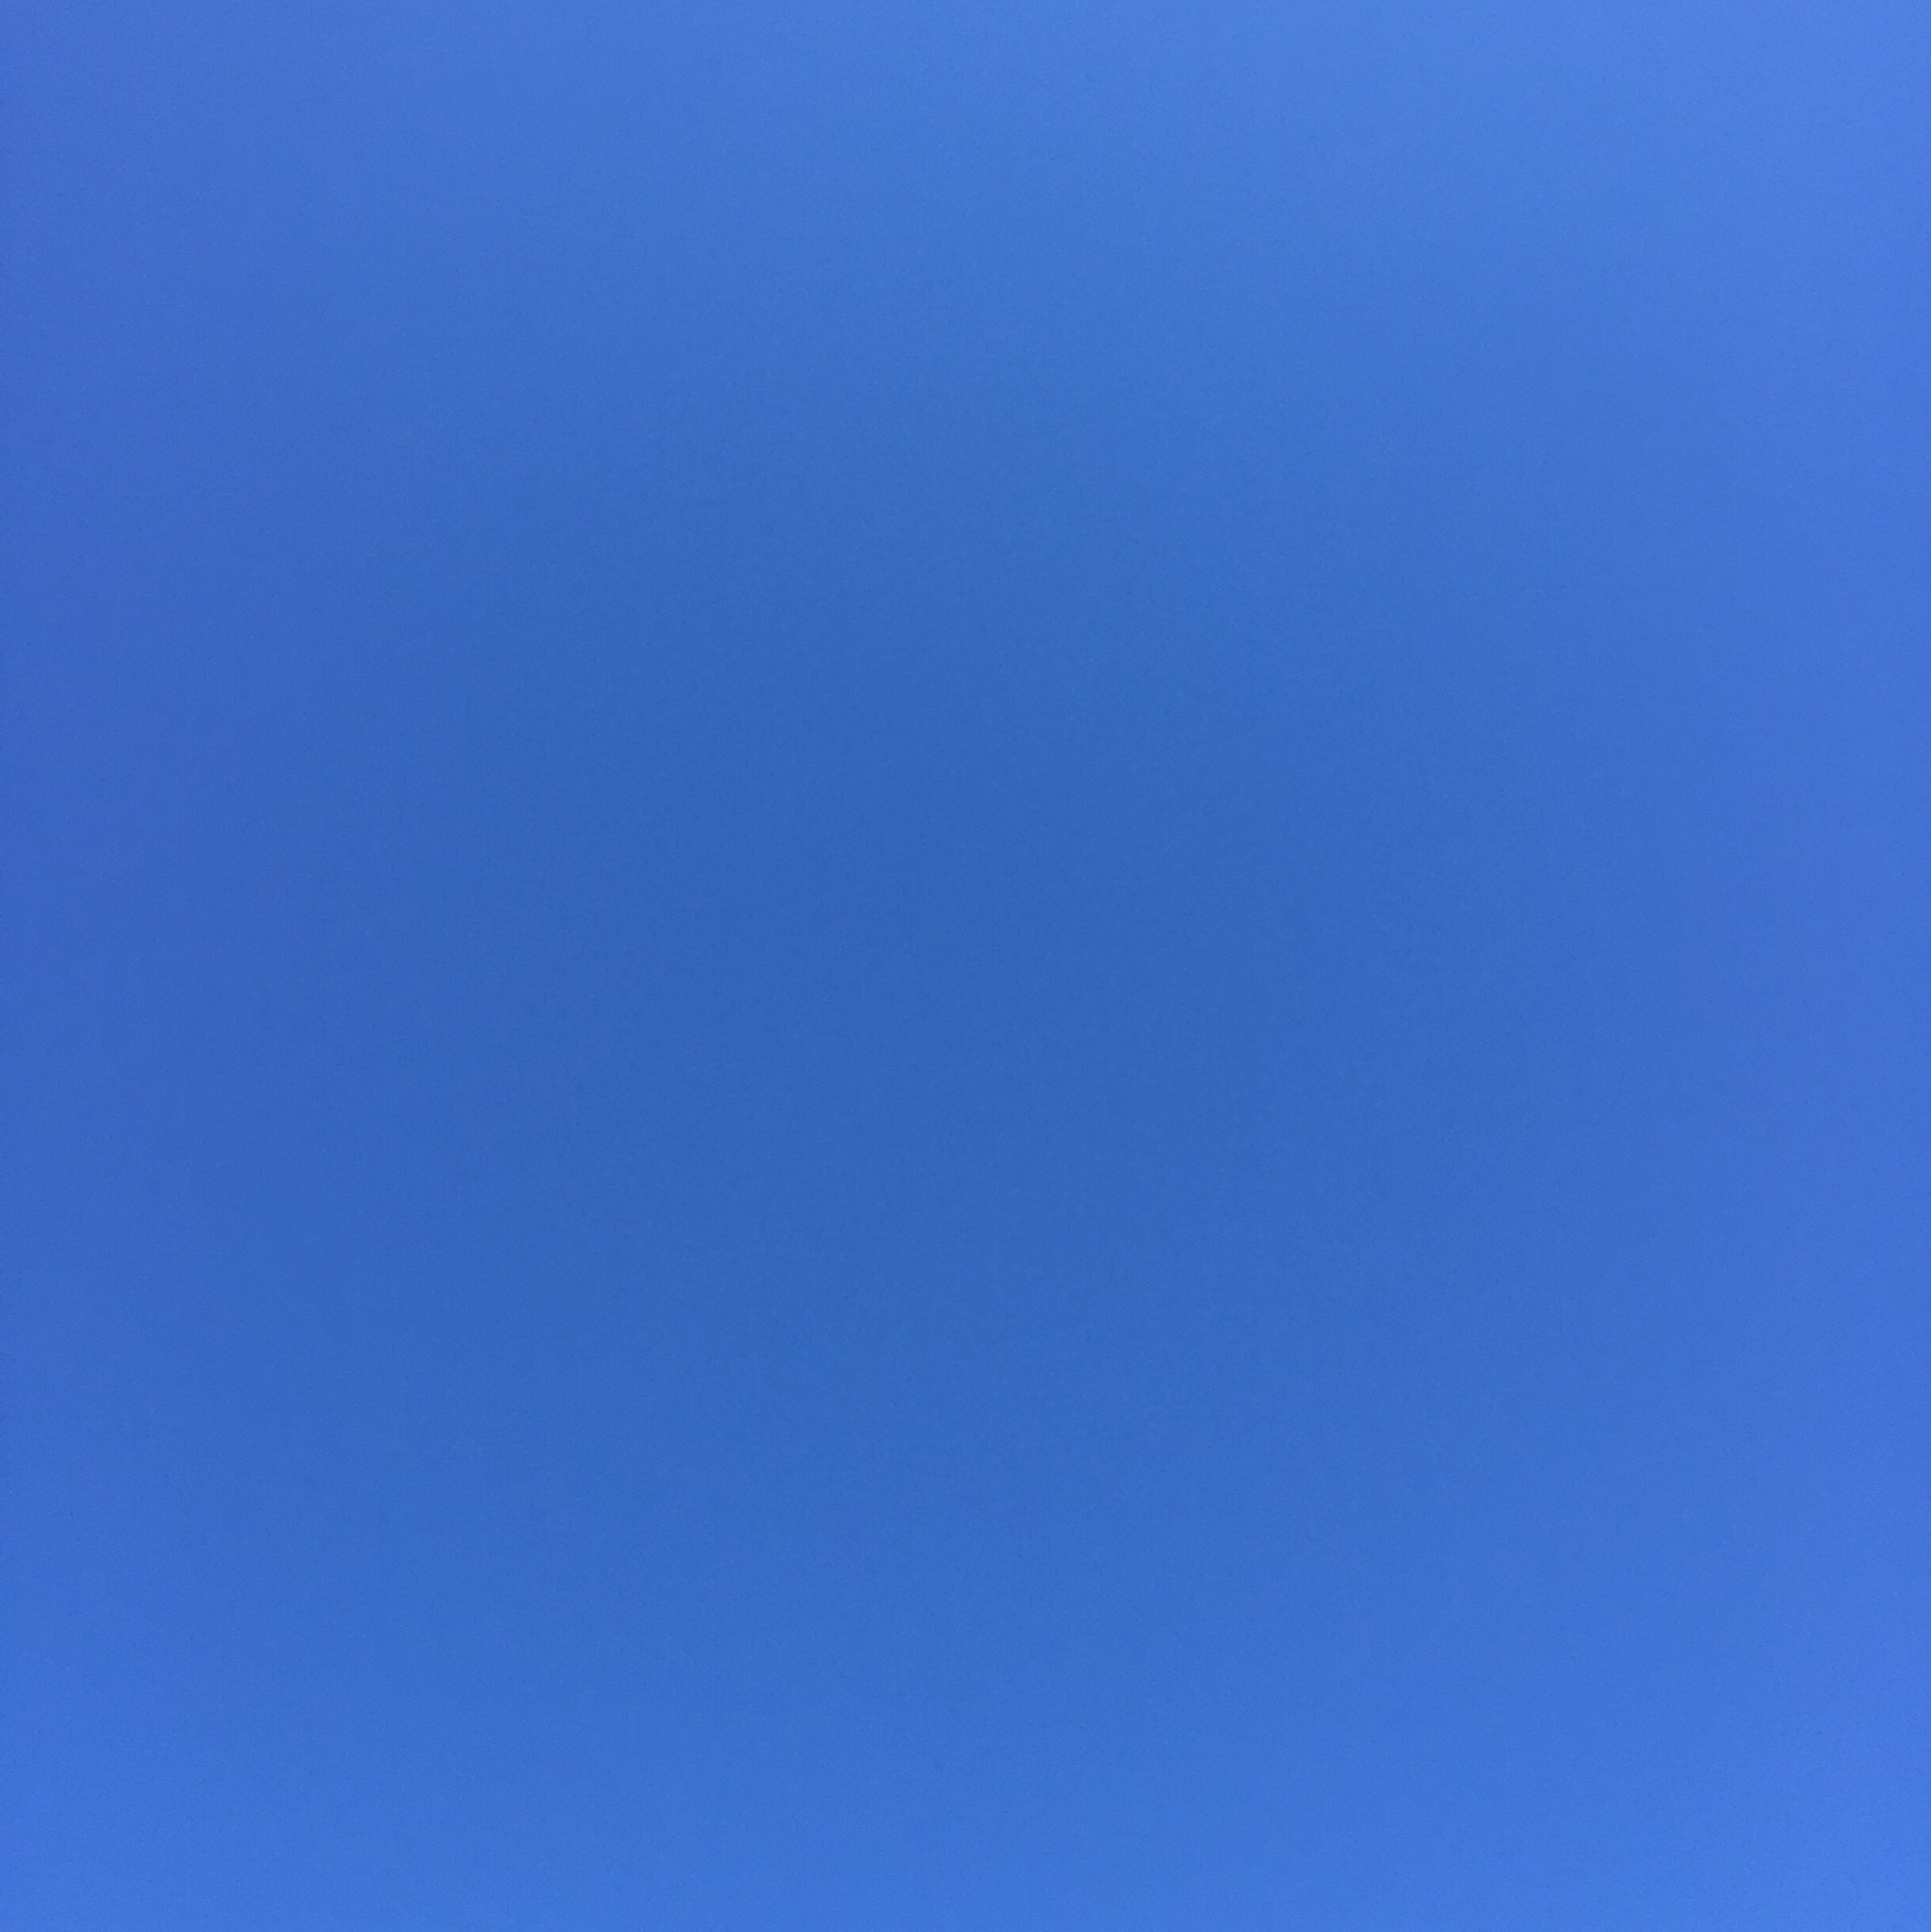 Pictured: A blue sky.